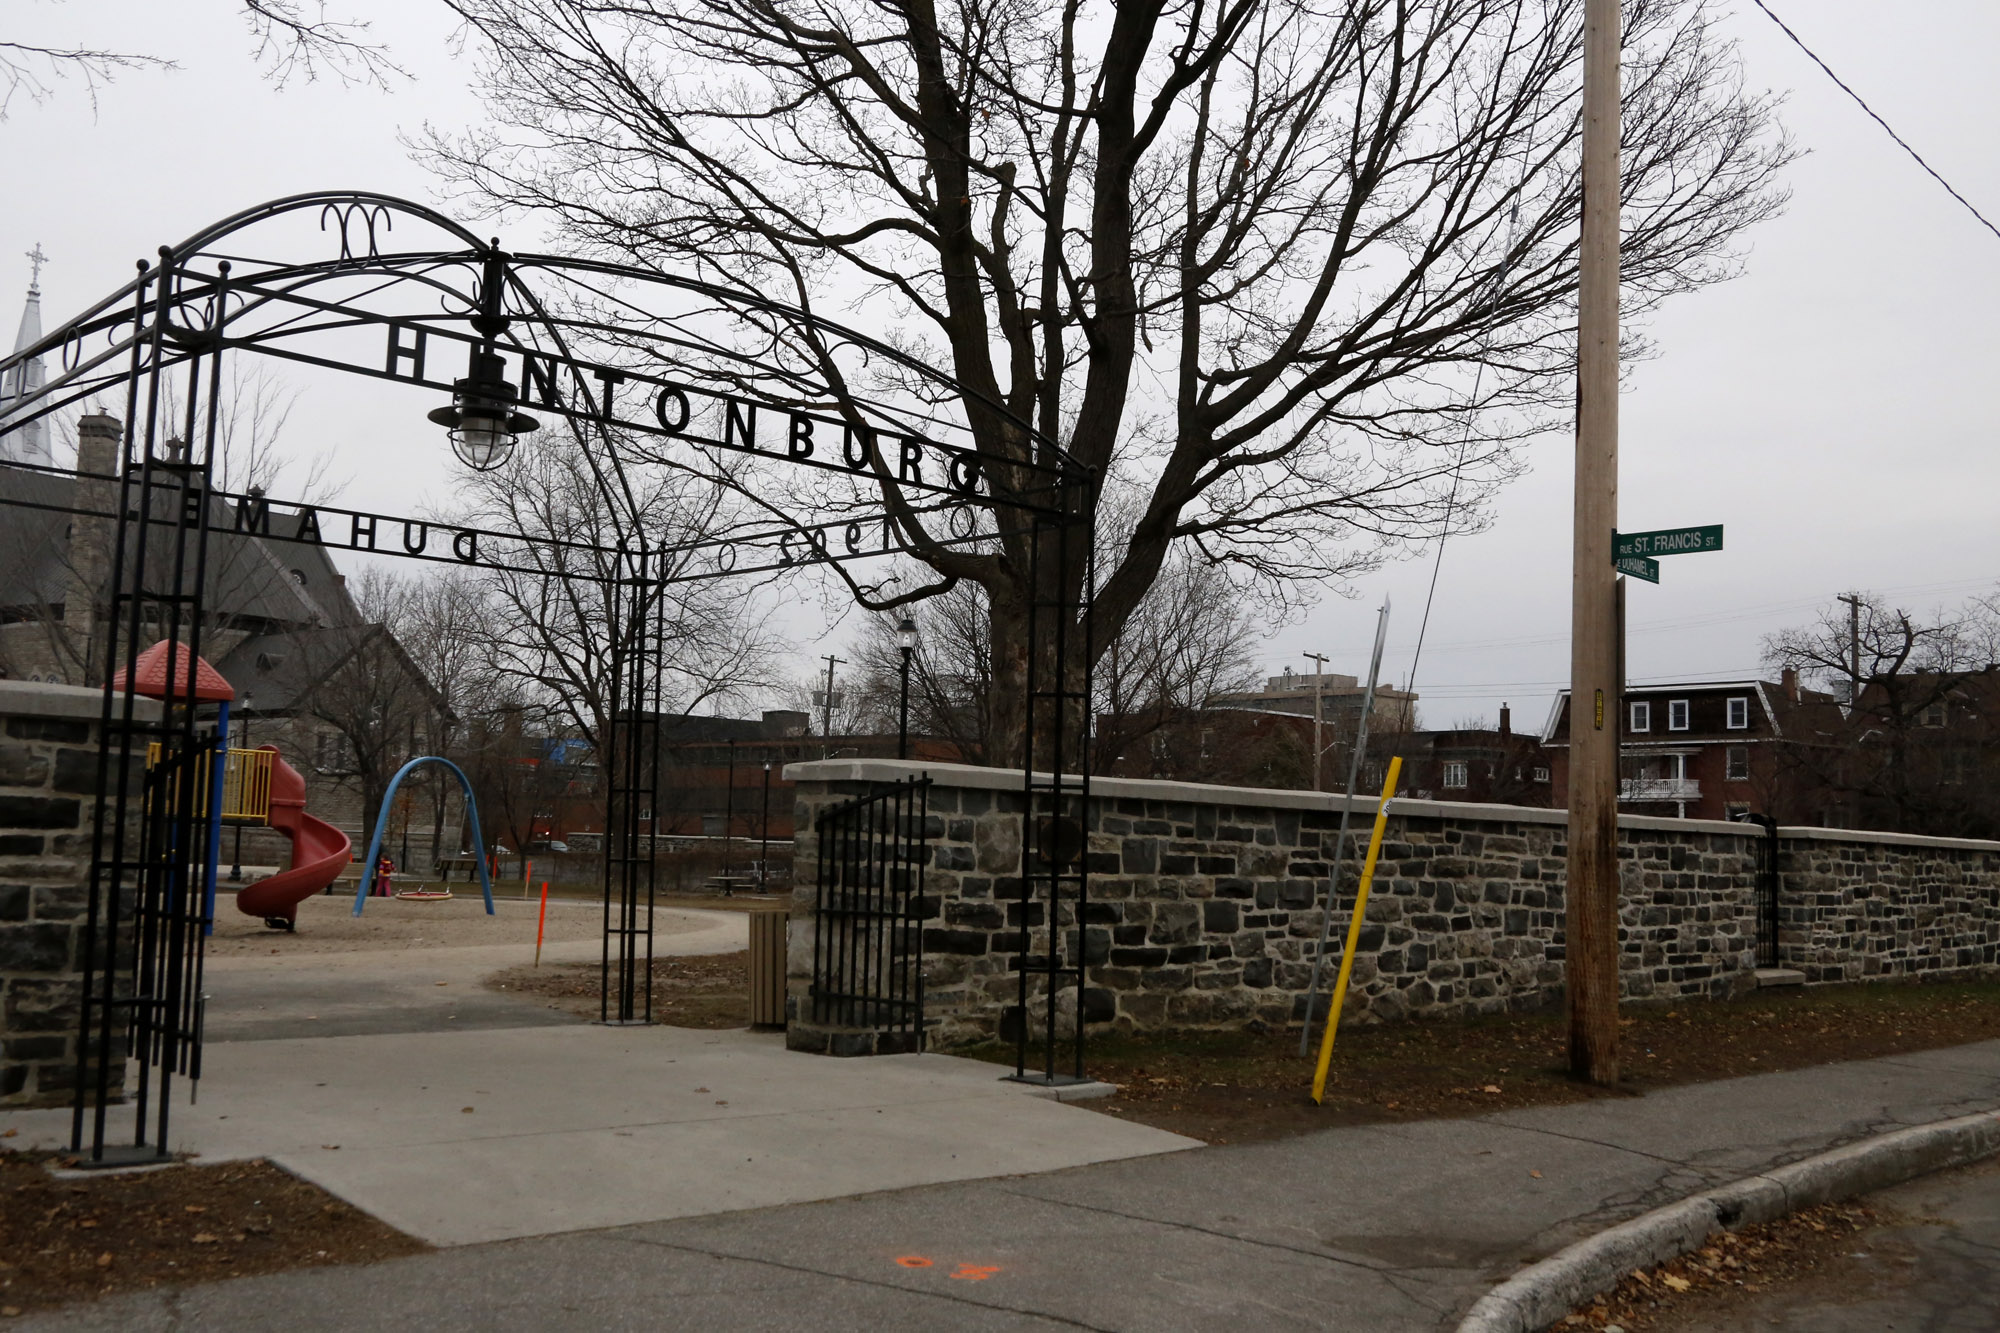 Hintonburg Park entrance, from St. Francis Street. The St. François d'Assise Church, in the background on the left, dominates the park. The wall was renovated in 2010. Photo: Stephanie Elliott 2014.